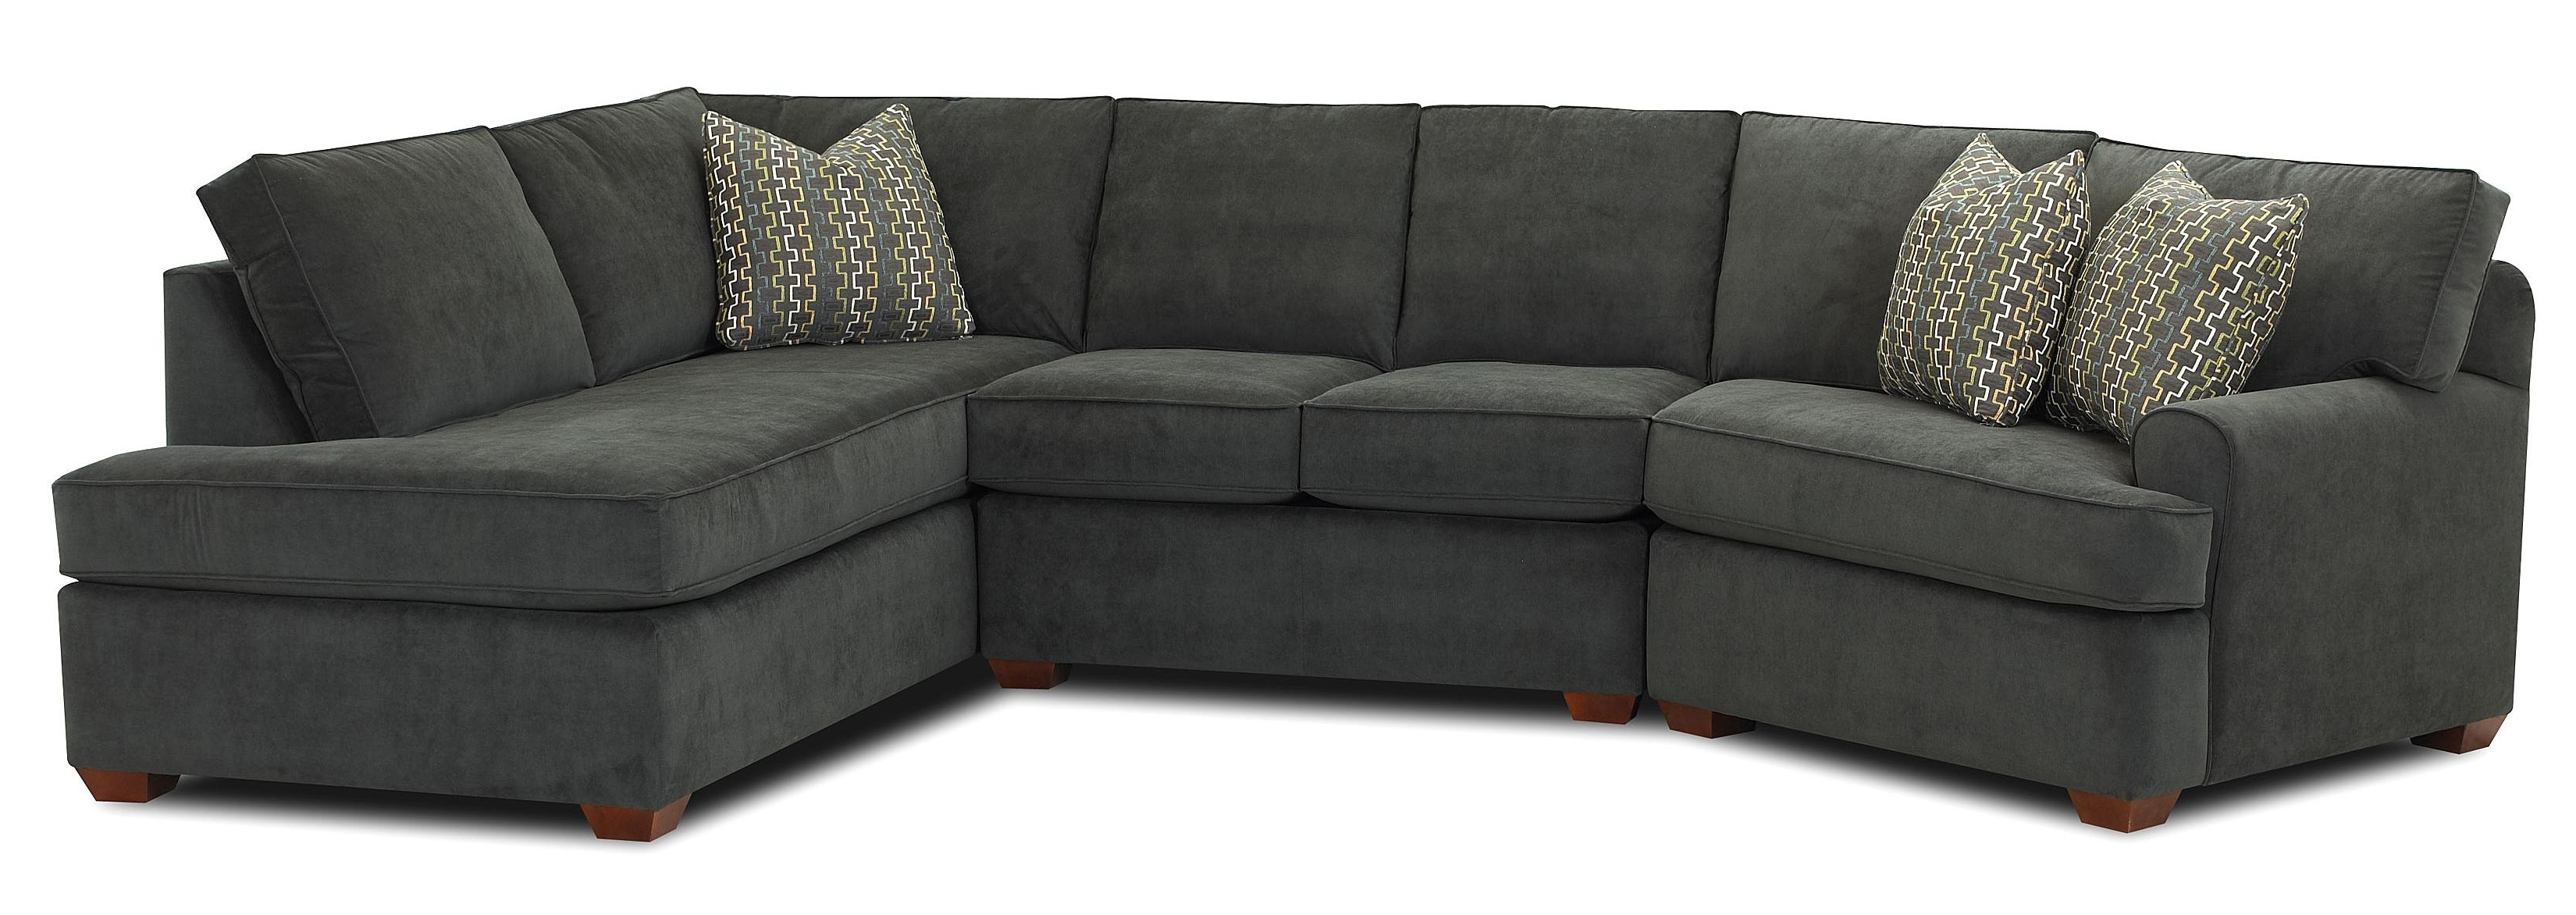 Most Recently Released Sectional Sofa Chaises Regarding Sectional Sofa With Right Facing Sofa Chaiseklaussner (View 3 of 15)